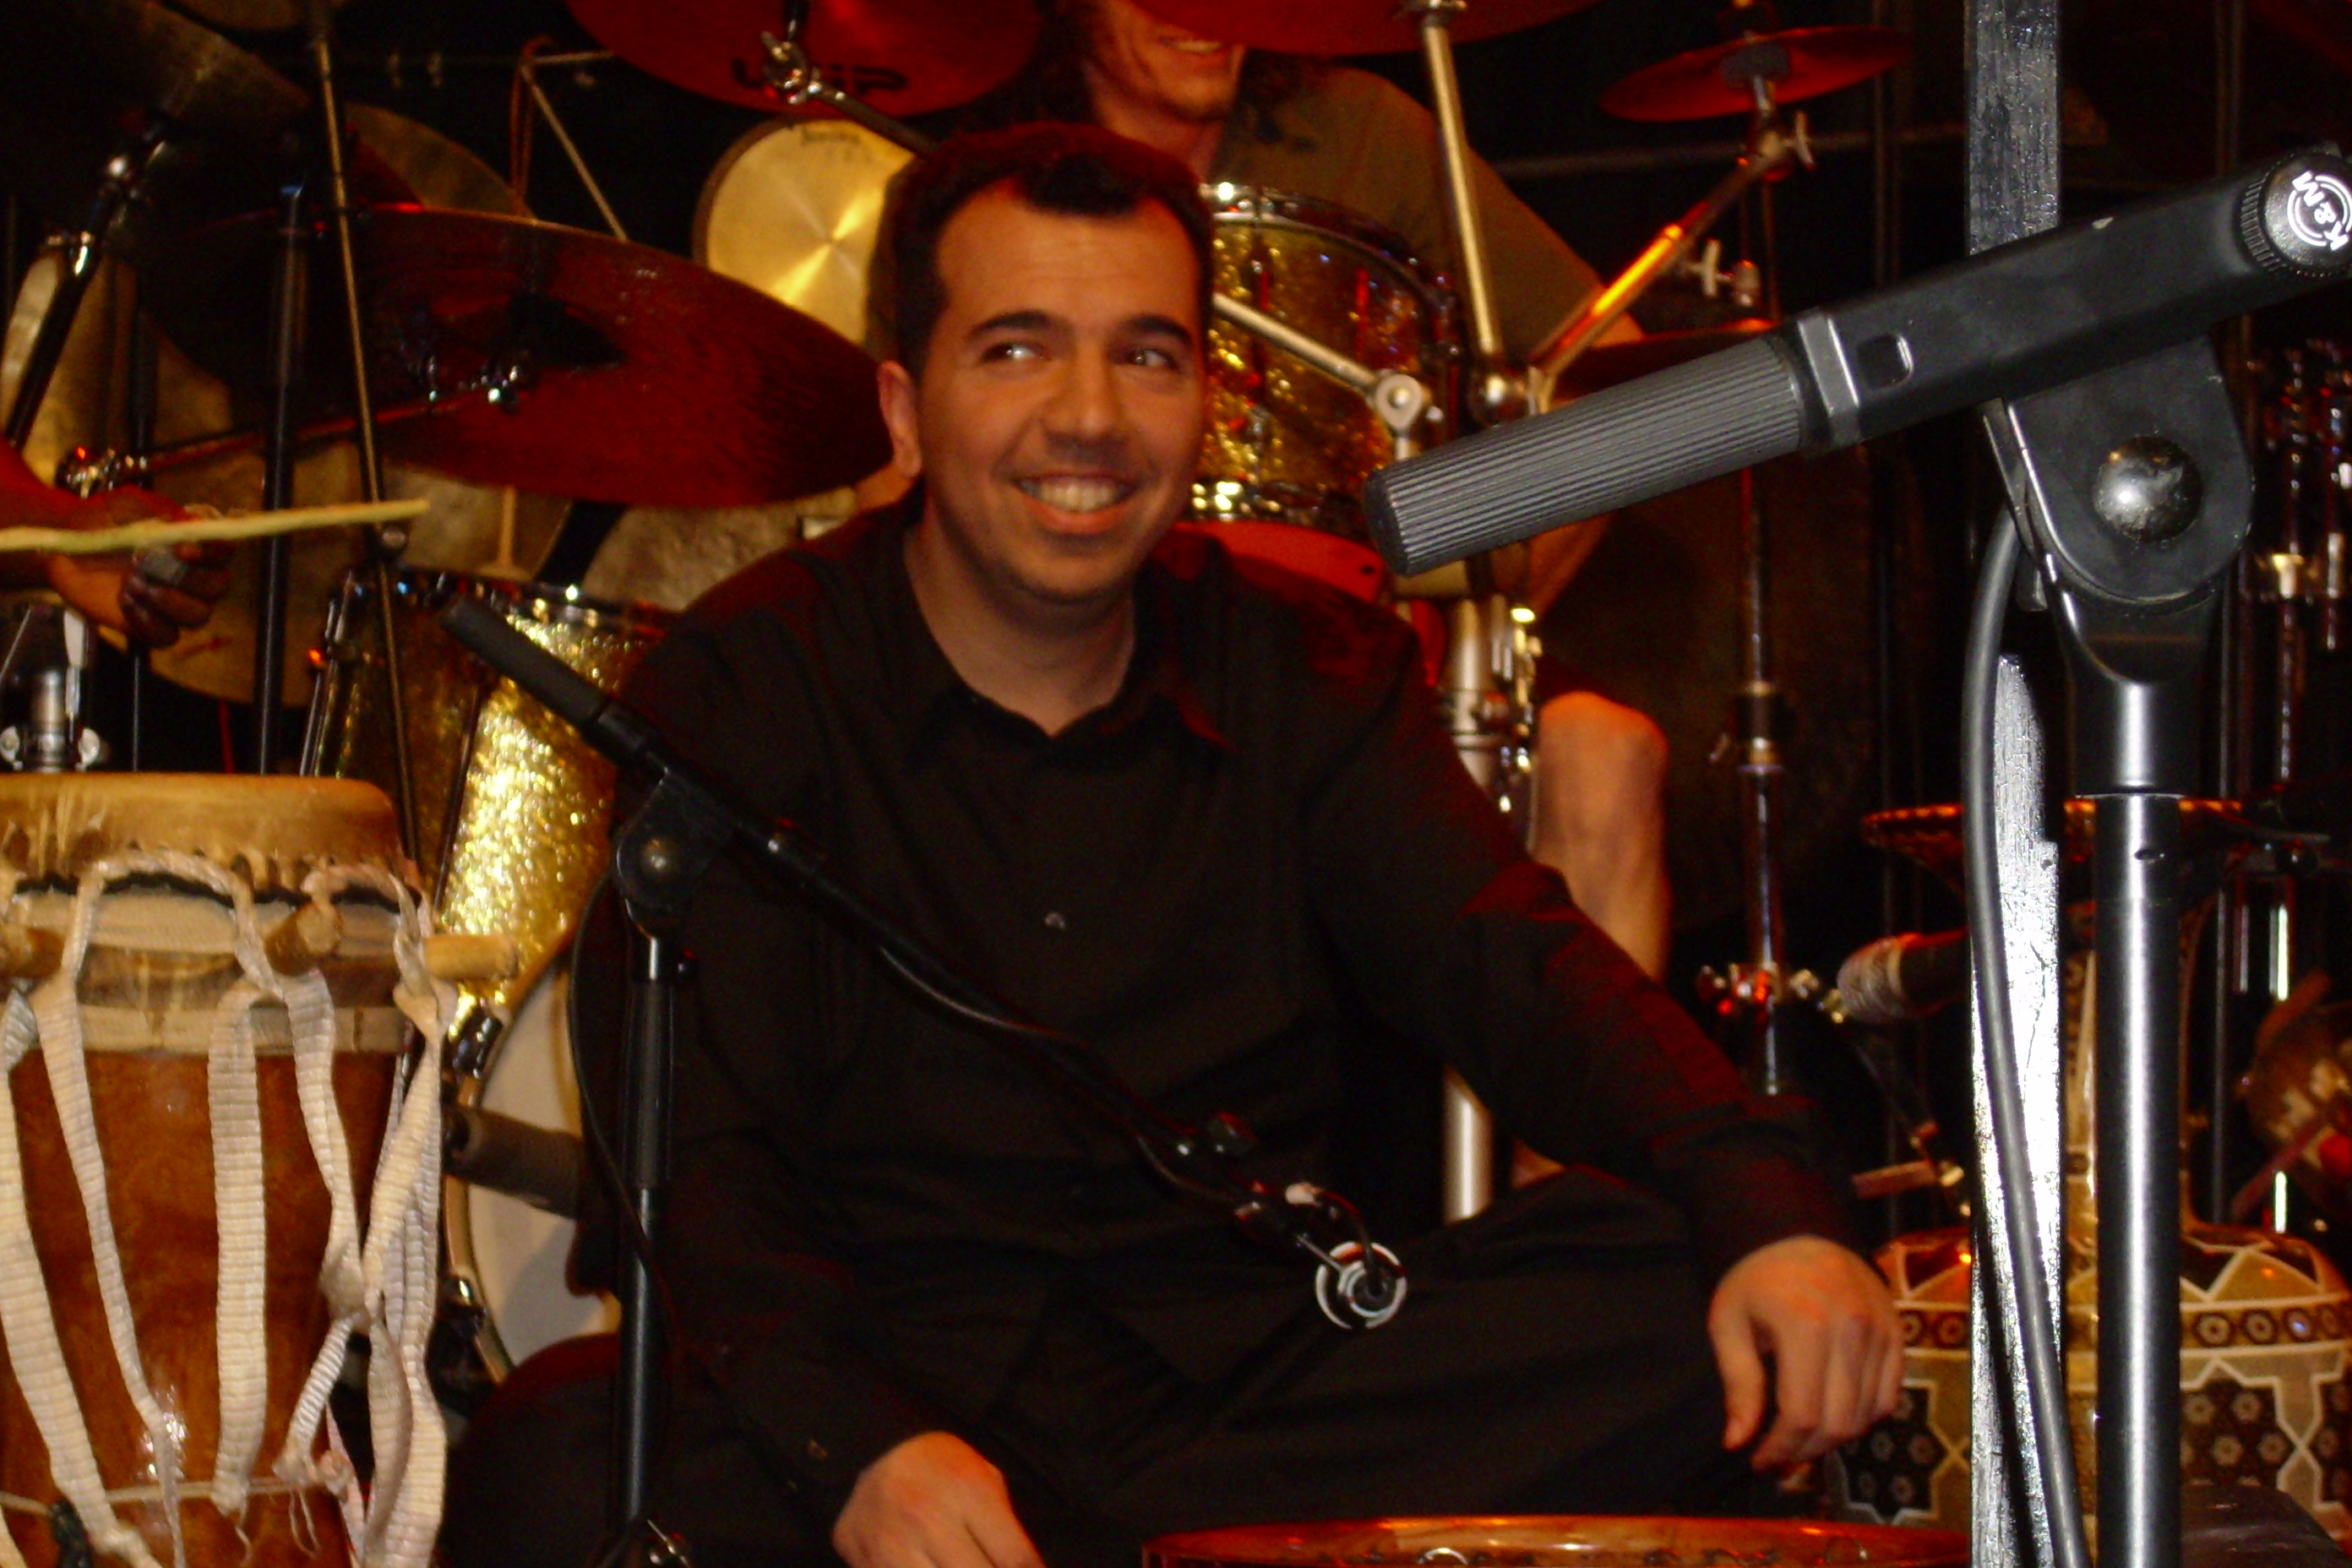 World Family of Percussion Pack Tour Concert in Germany in 2007